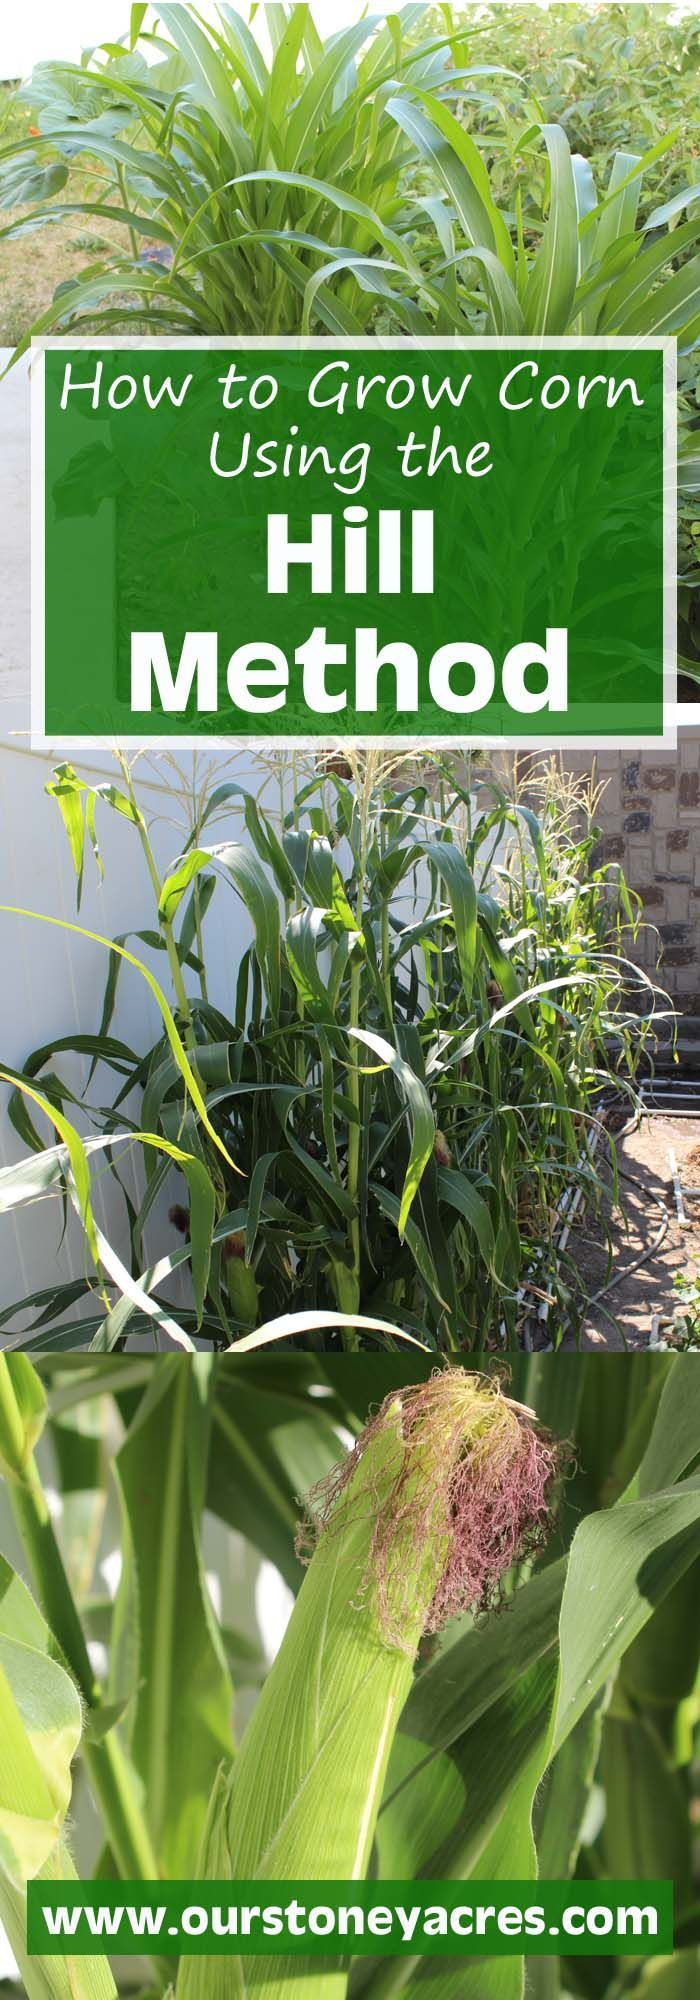 Growing Corn Using The Hill Method Is A Great Solution For Those Of You  That Would